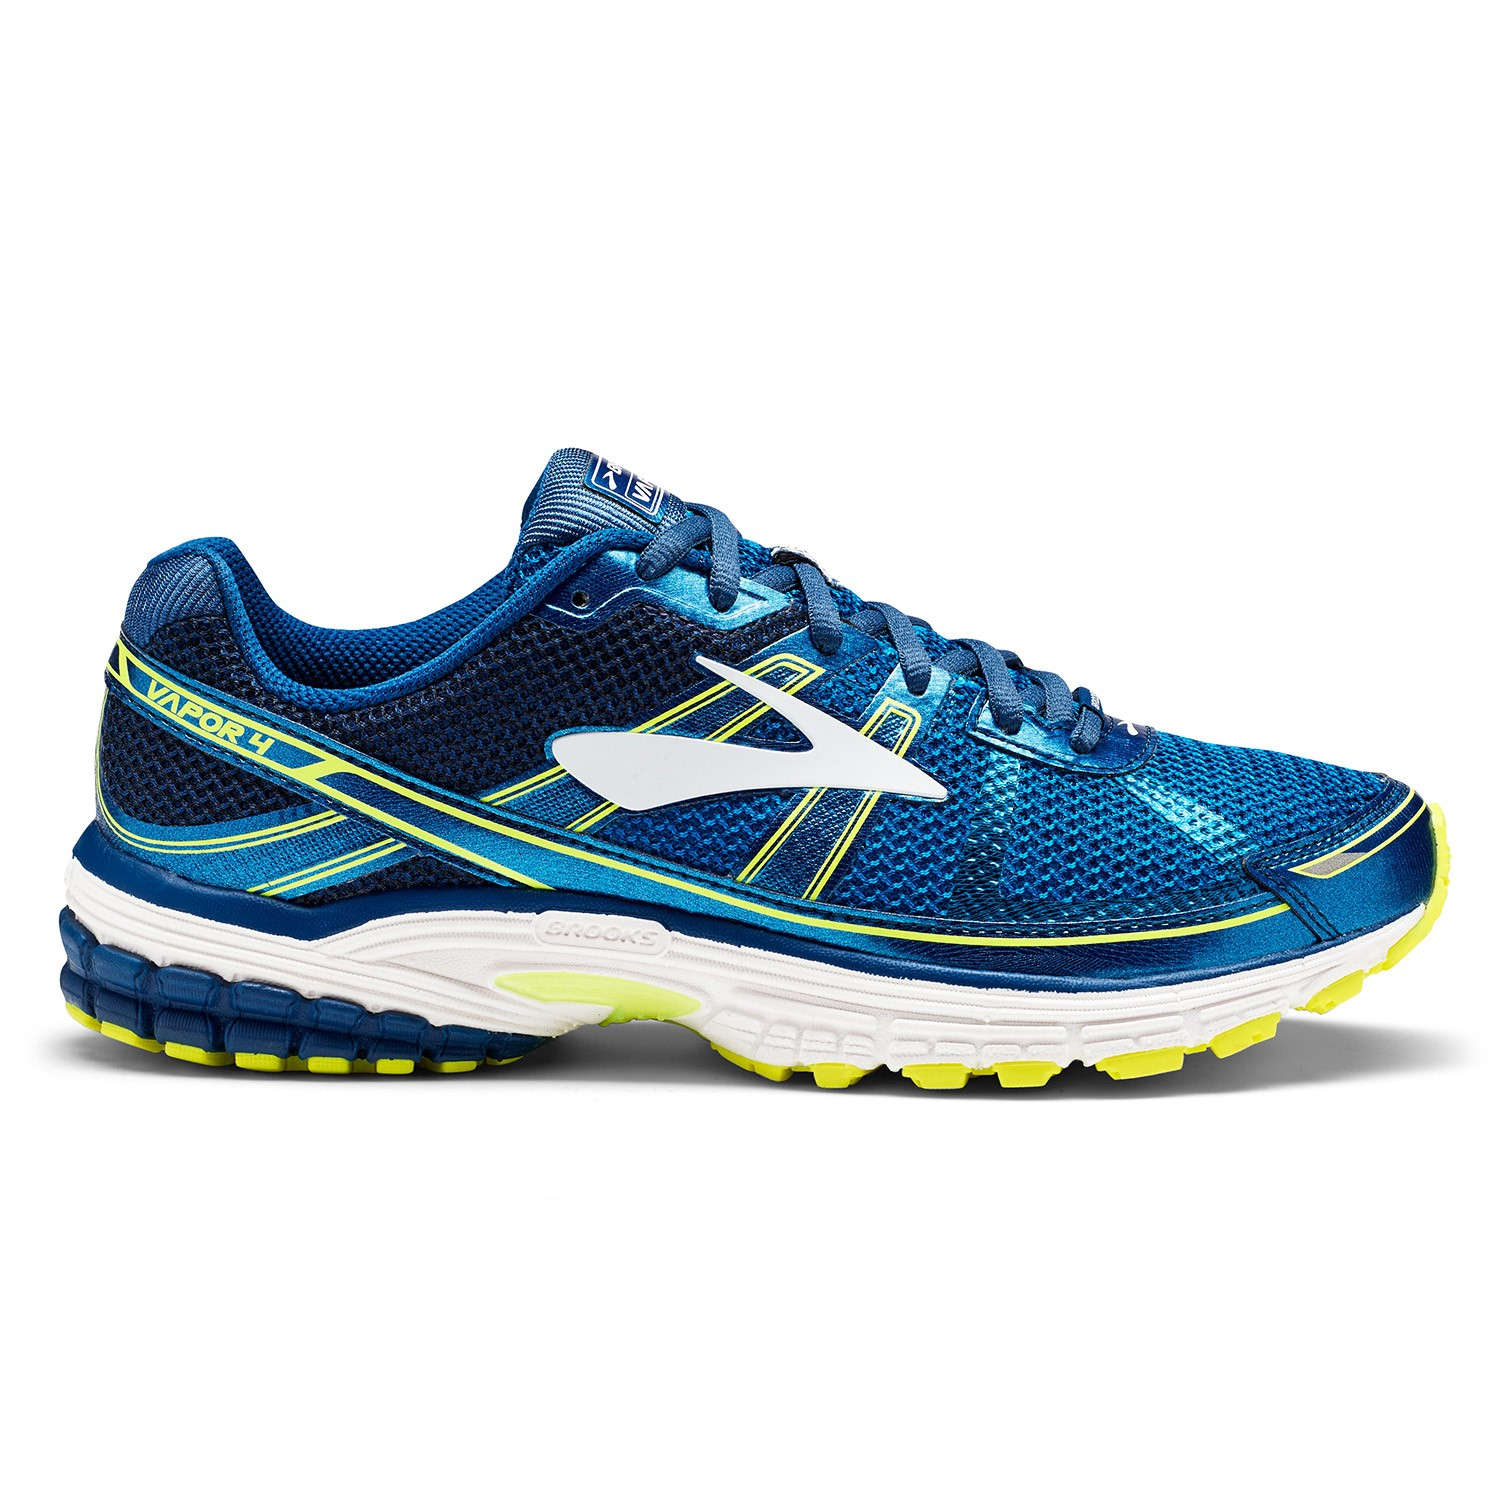 Brooks Vapor 4 - Mens Running Shoes - Blue/Navy/Nightlife